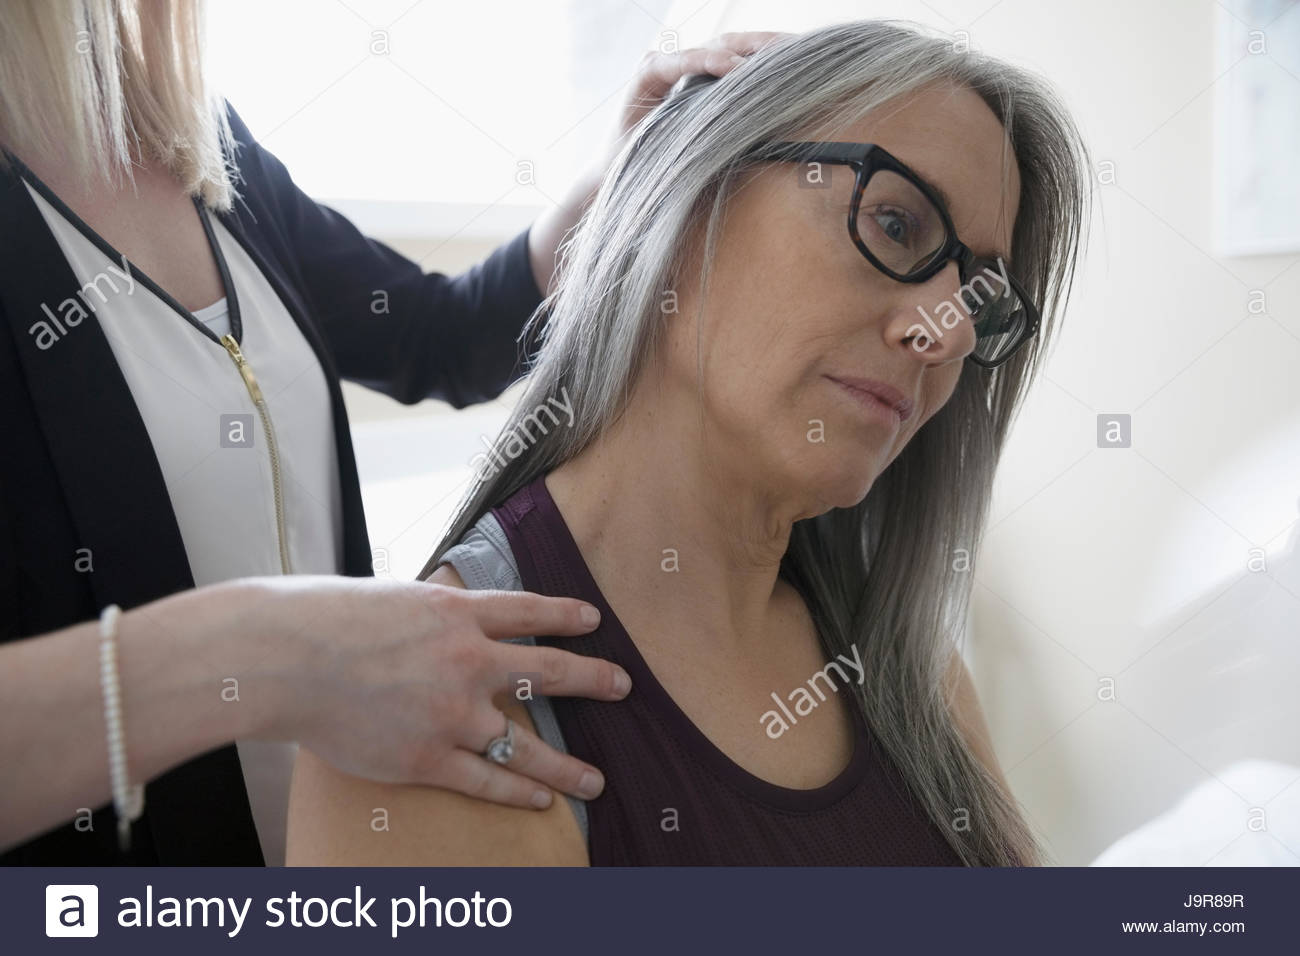 Female physiotherapist stretching neck of client in clinic examination room Stock Photo